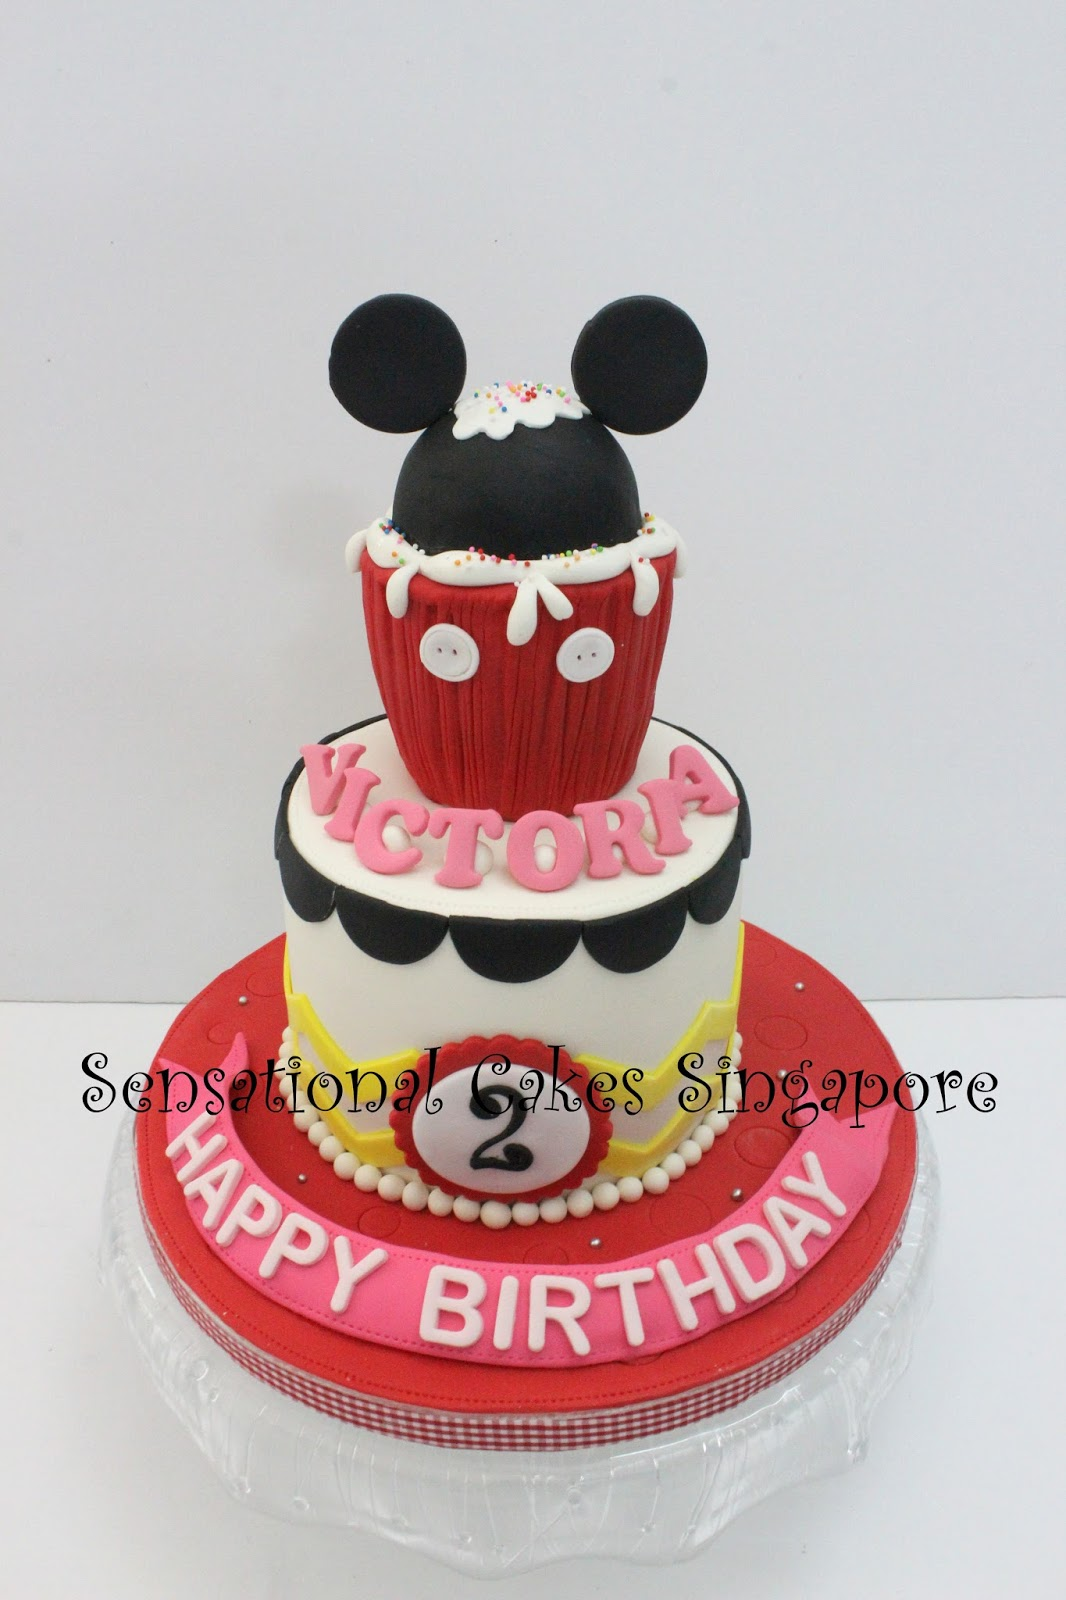 The Sensational Cakes Mickey Mouse Cupcake Theme Design